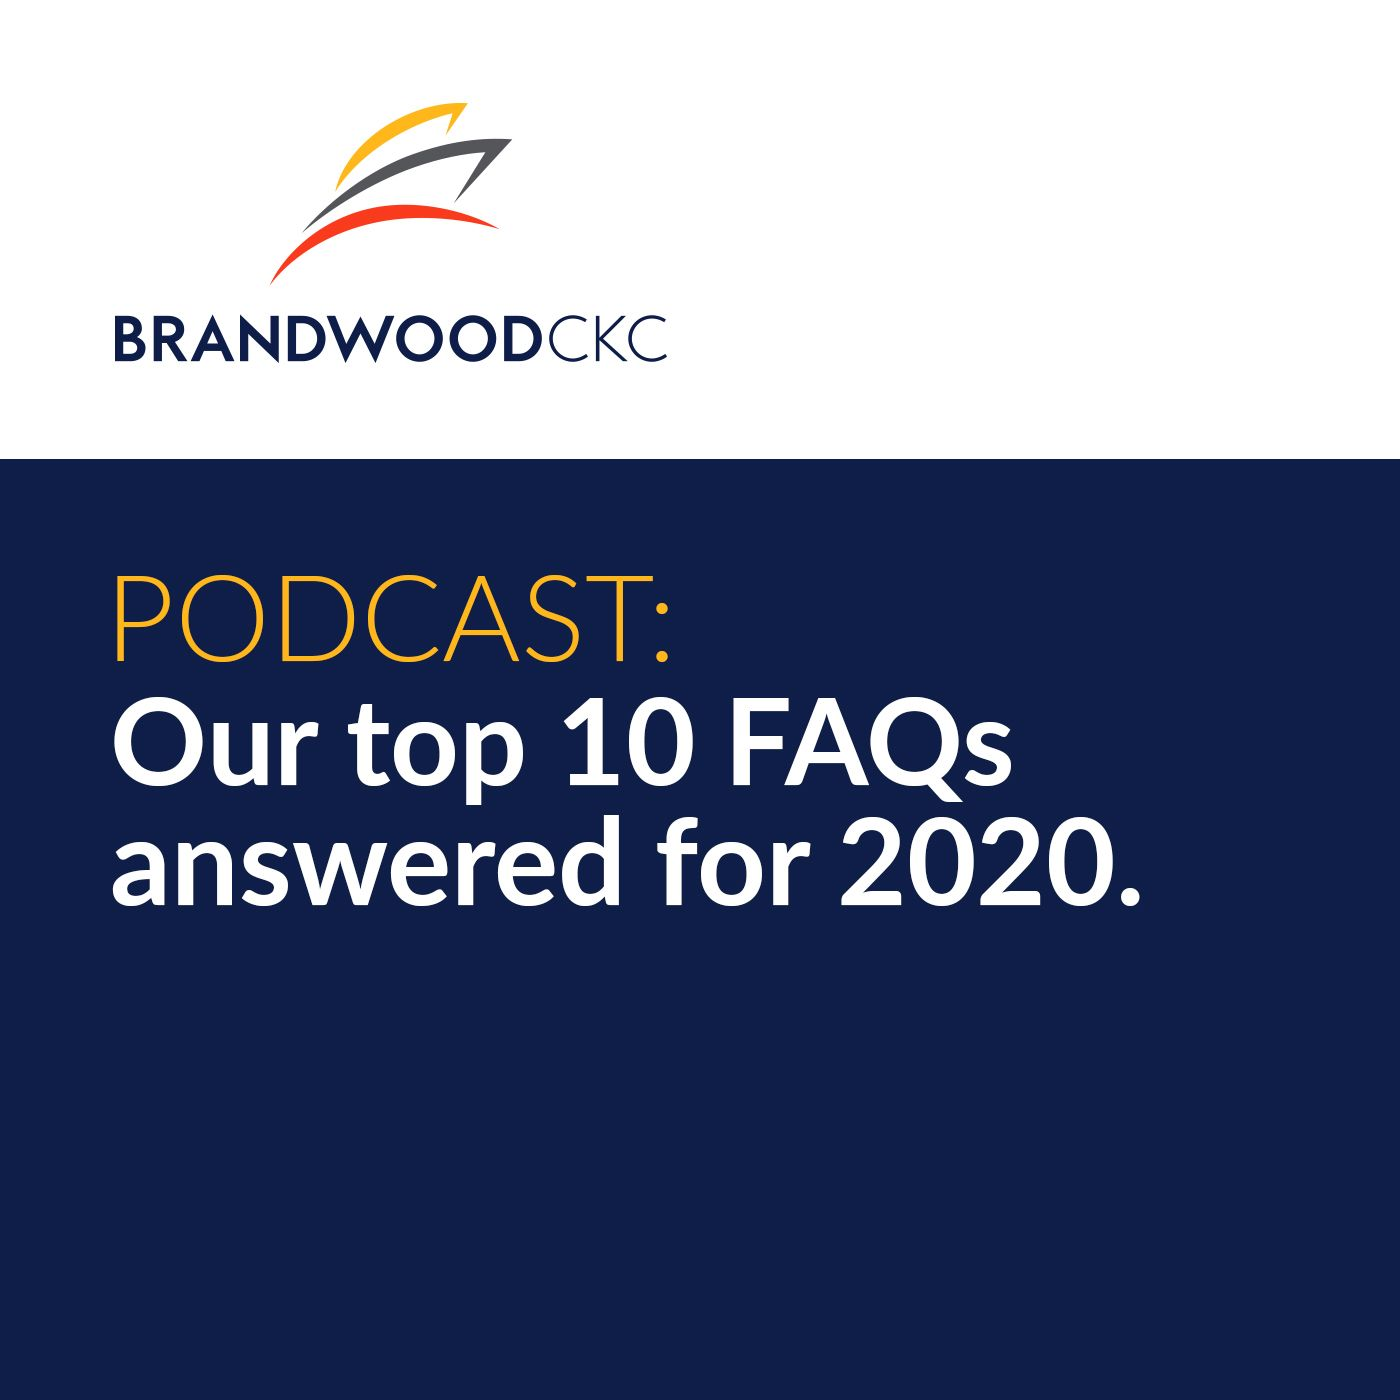 Our top 10 FAQs answered for 2020